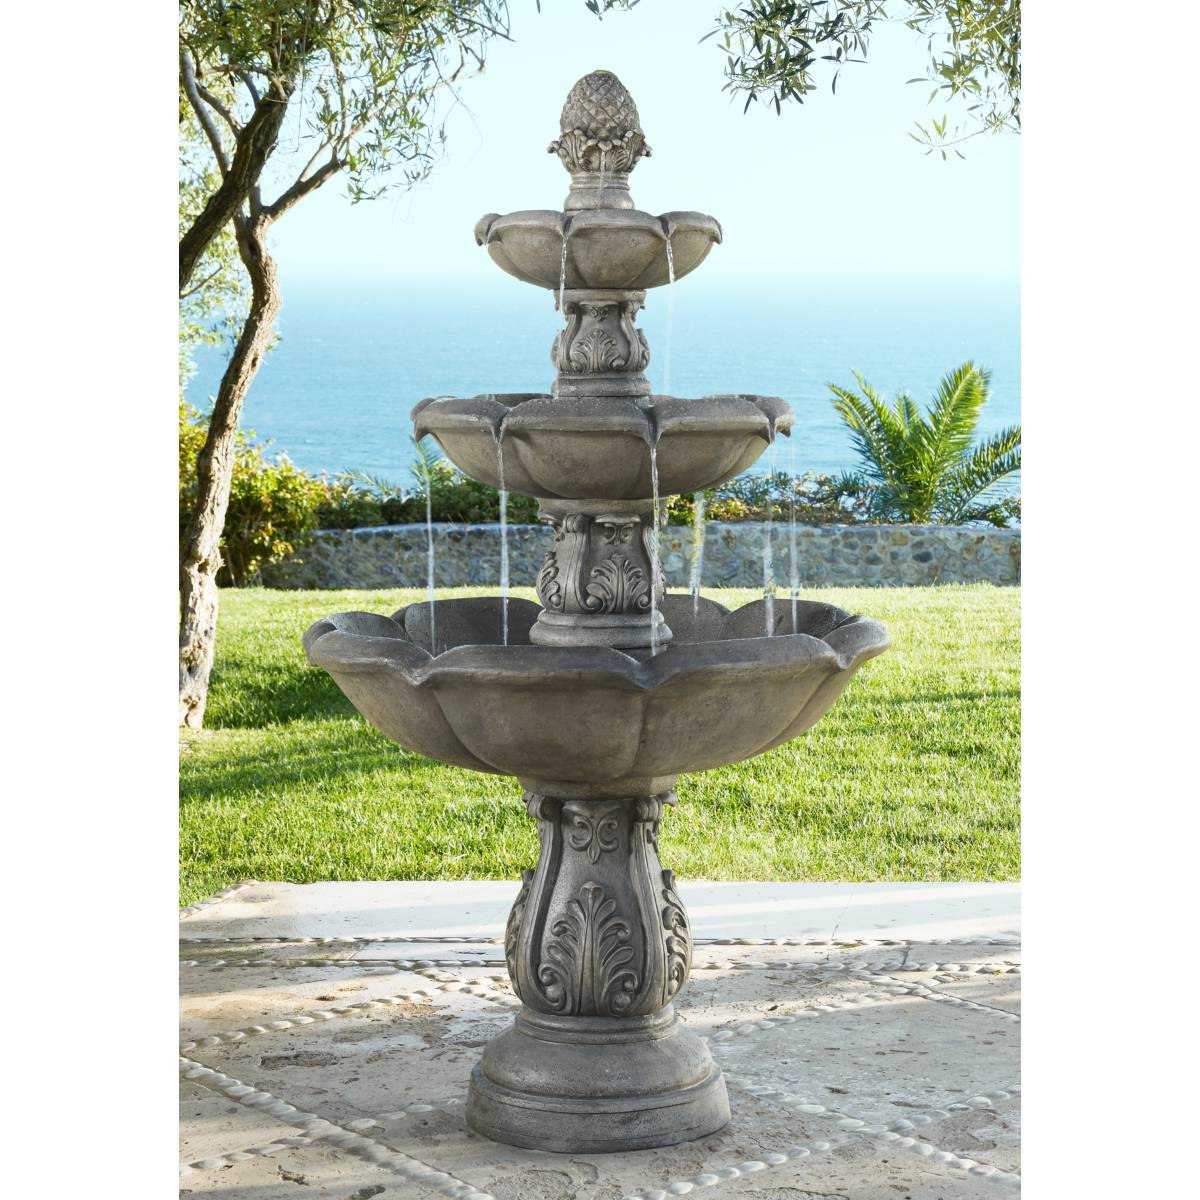 Fountains For Home Or Office Decorative Water Fountains Lamps Plus